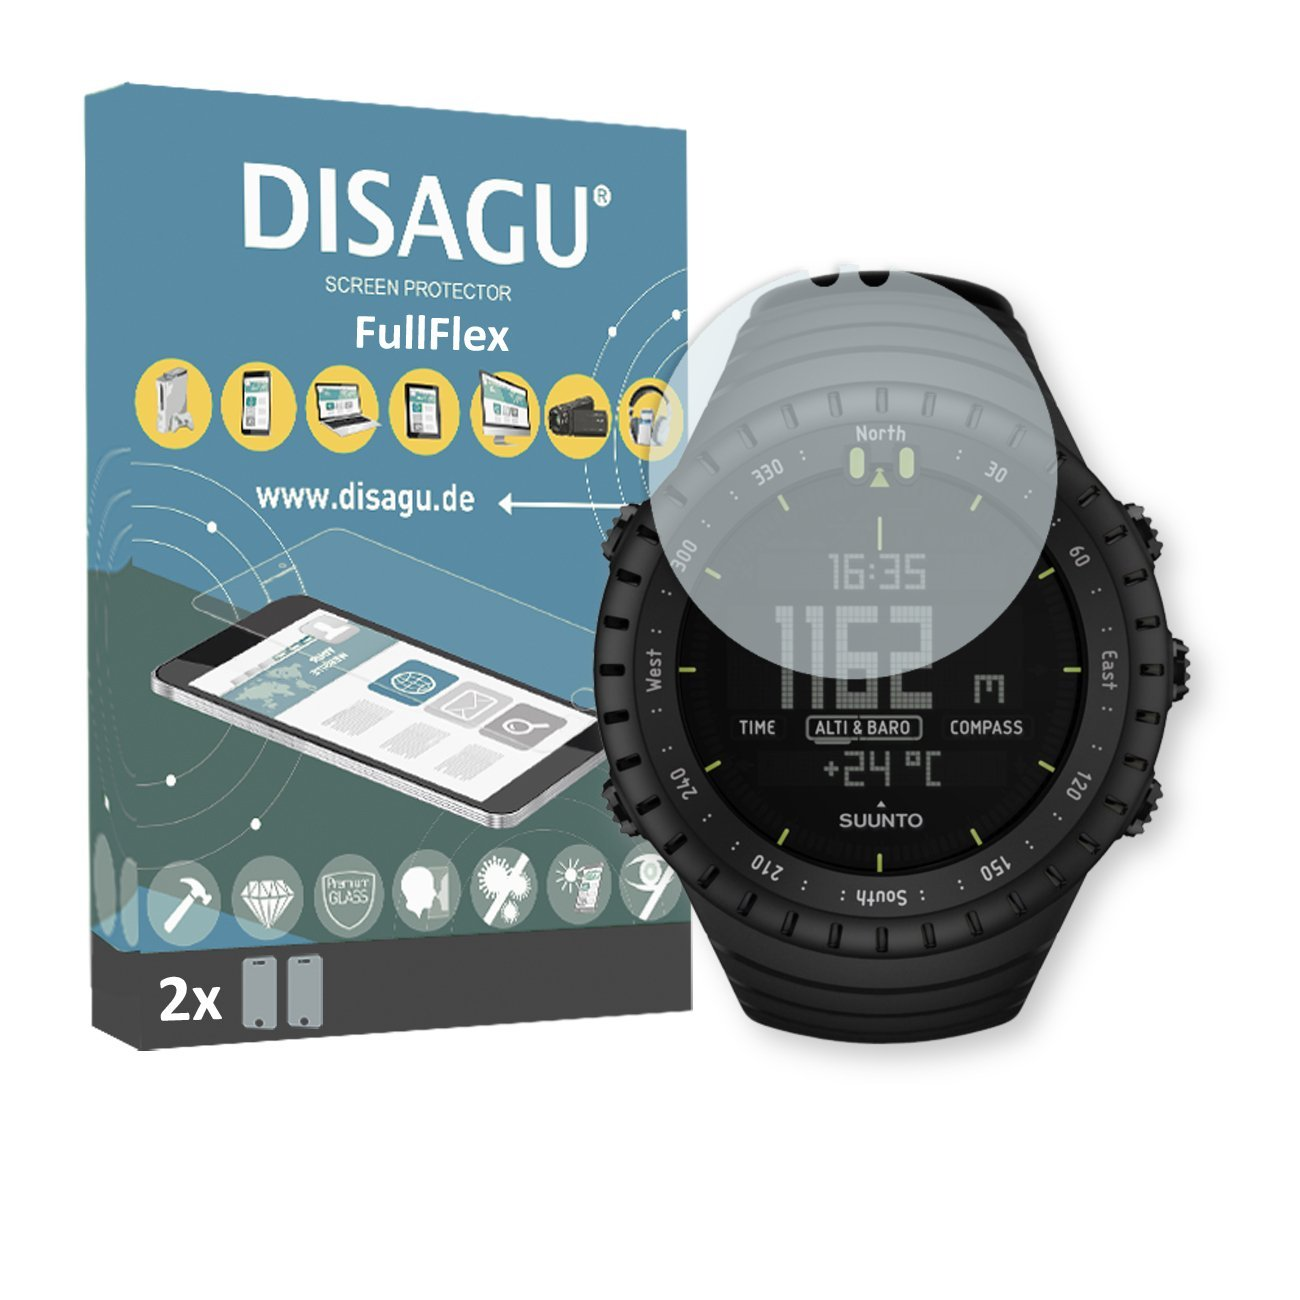 Cheap Black Core Alliance Find Deals On Line At Suunto Ultimate Get Quotations Disagu 2 X Fullflex Screen Protector For All Foil